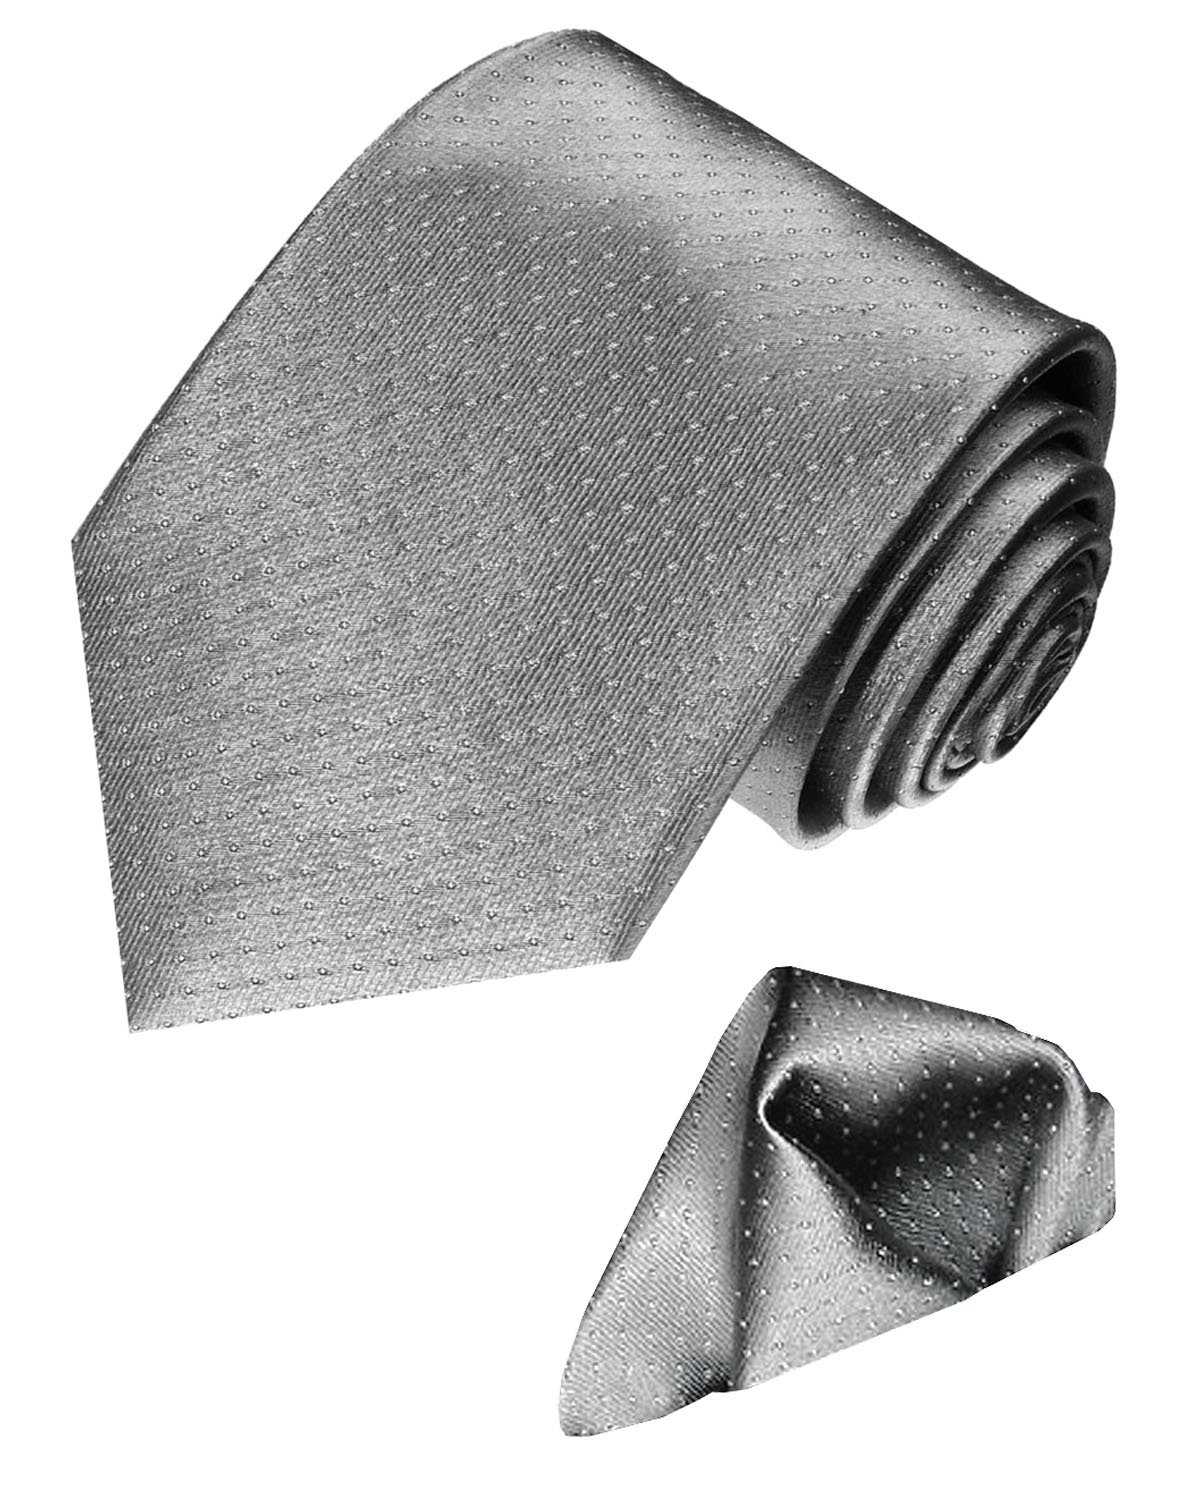 LORENZO CANA Italian Silk Business Tie Hanky Set Grey Silver Polka Dot 8449401